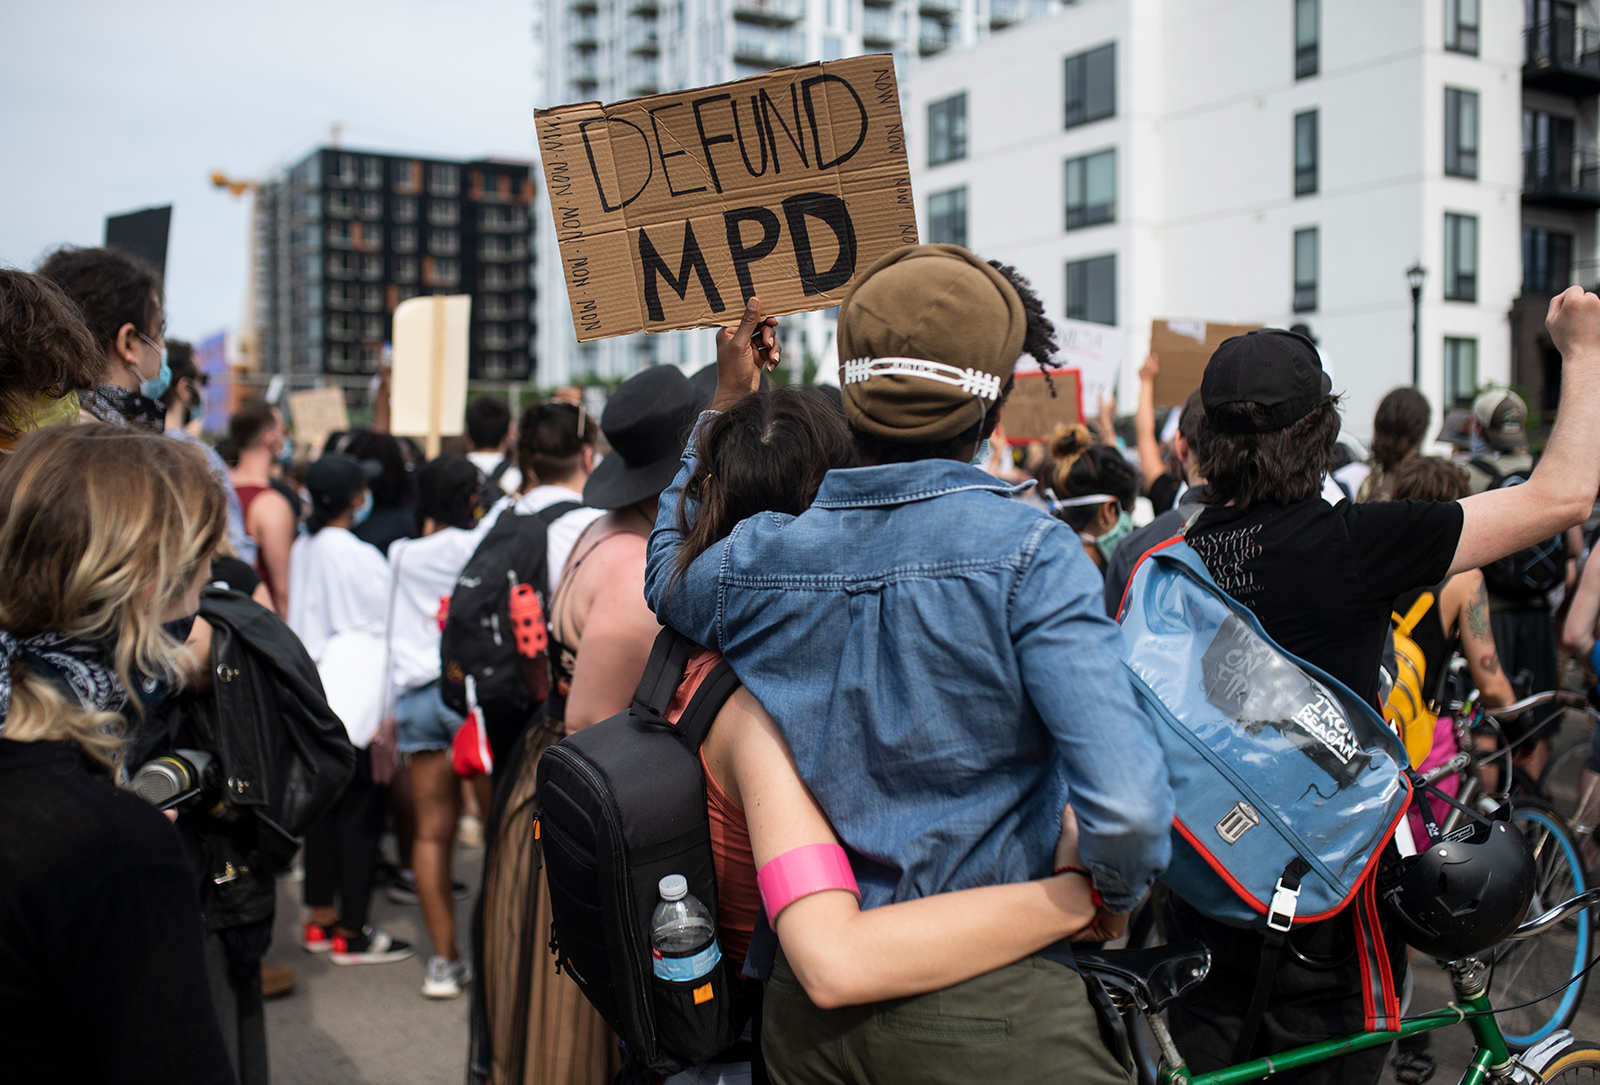 Demonstrators calling to defund the Minneapolis Police Department march on University Avenue on June 6, in Minneapolis, Minnesota.